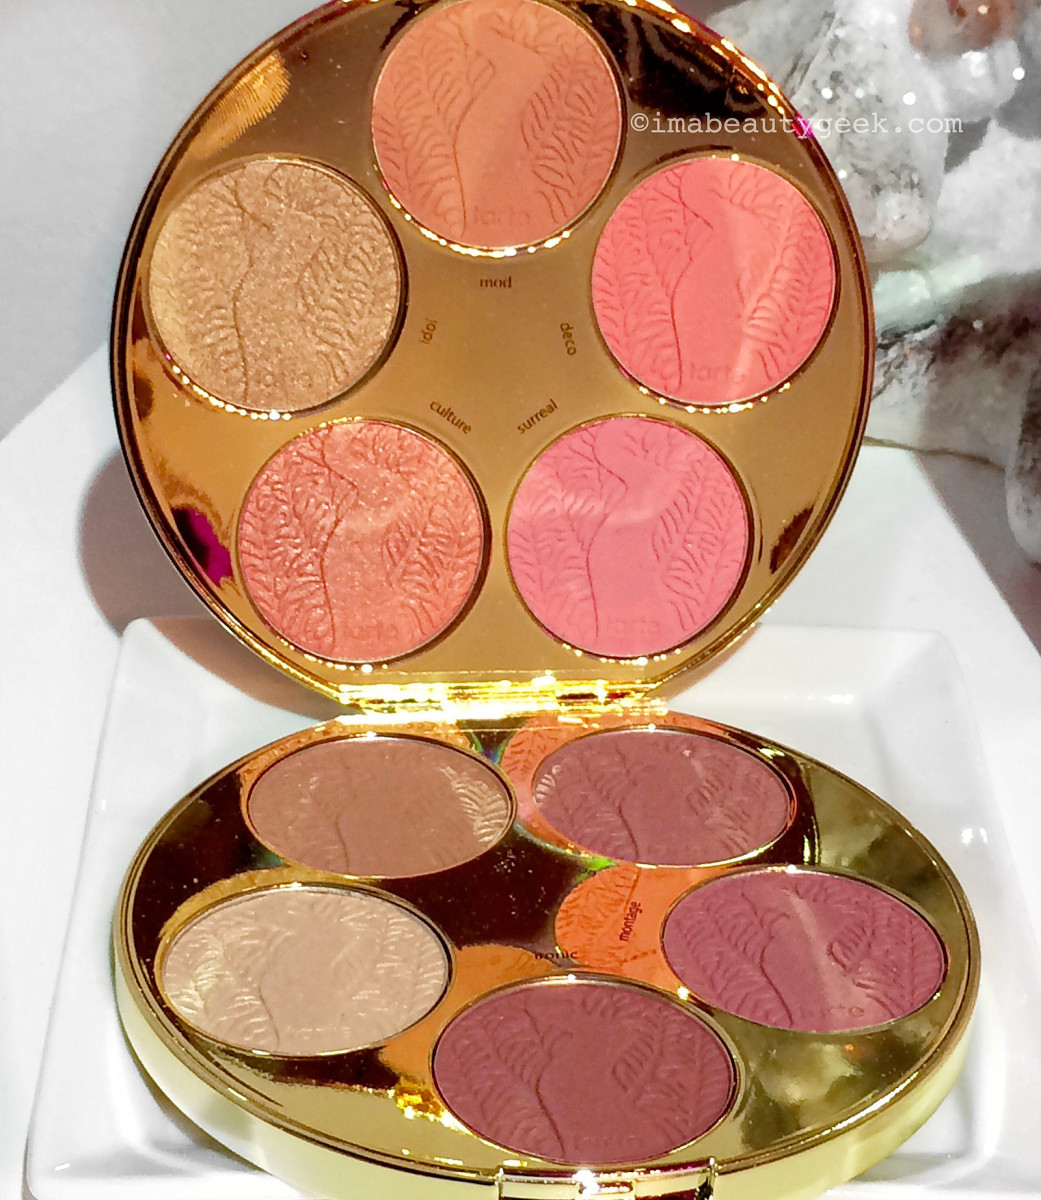 Tarte Color Wheel Amazonian Clay Blush: 10 shades